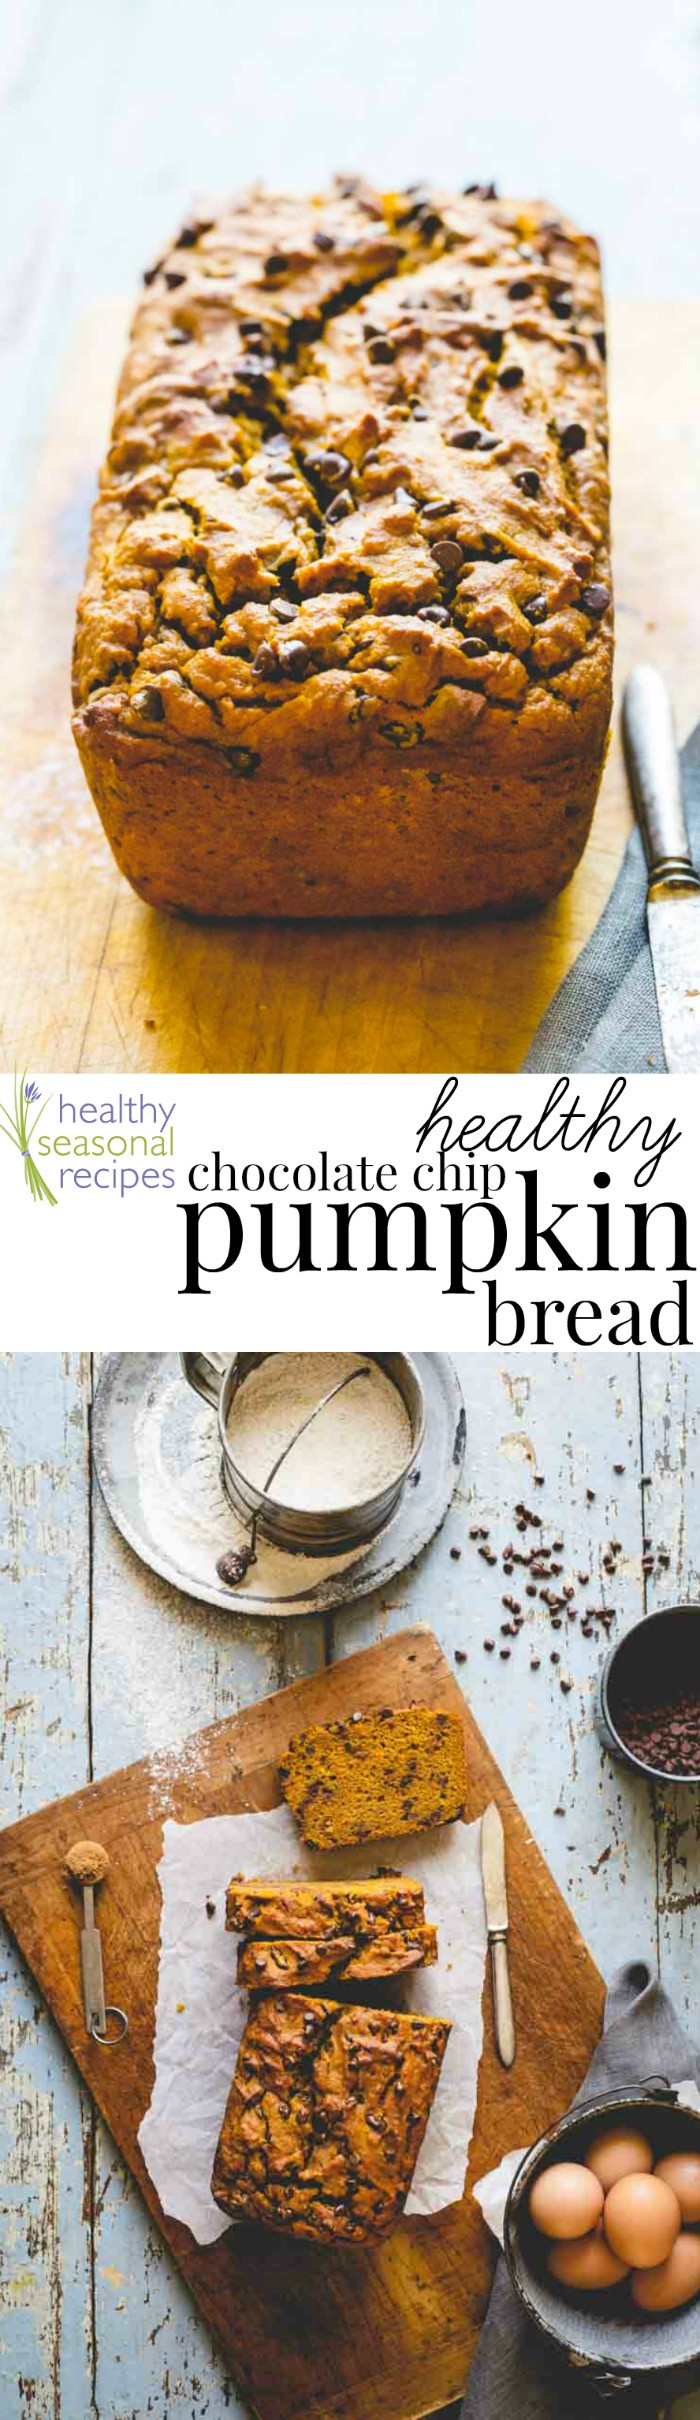 Healthy Pumpkin Chocolate Chip Bread  healthy chocolate chip pumpkin bread Healthy Seasonal